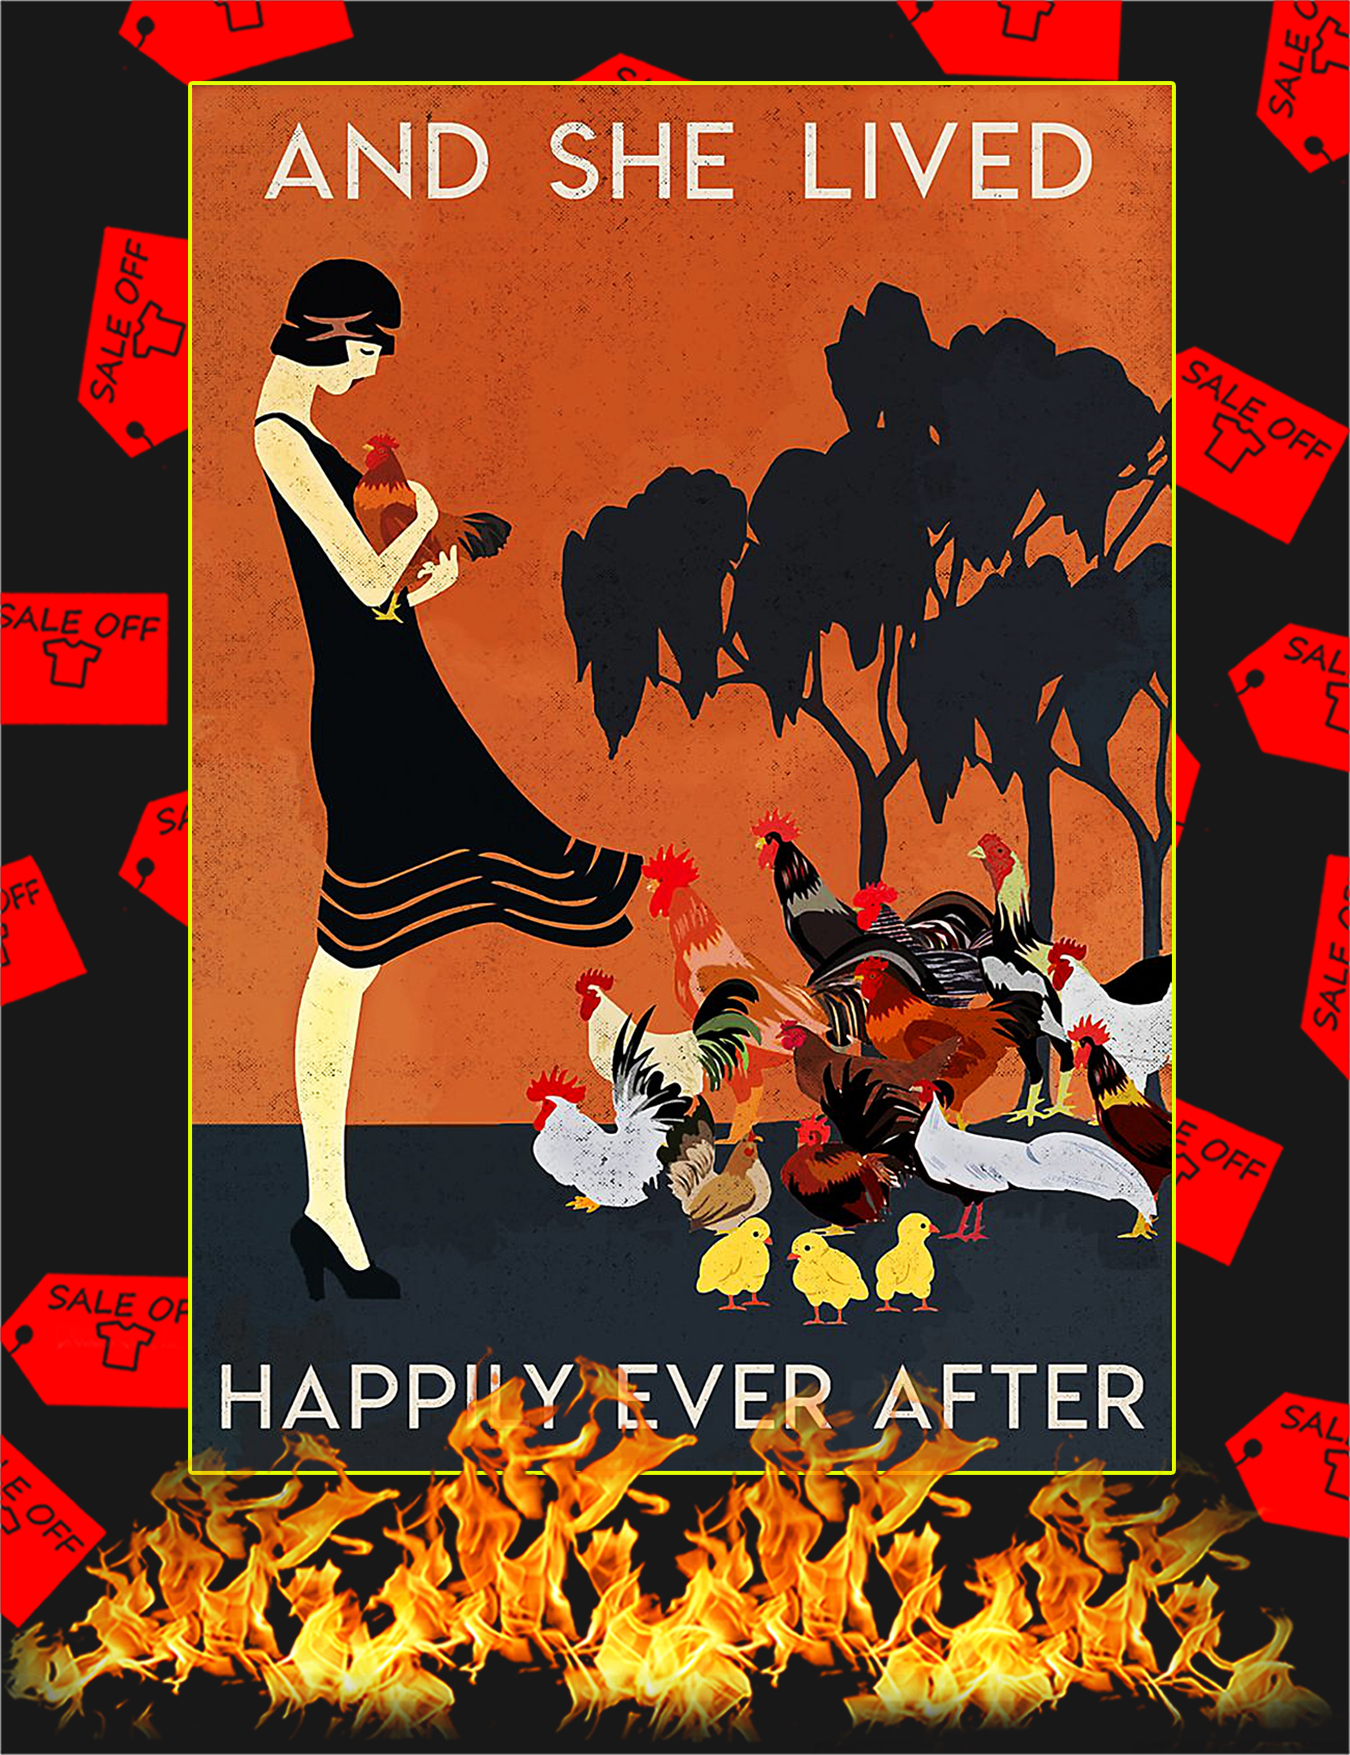 Chicken And she lived happily ever after poster - A3